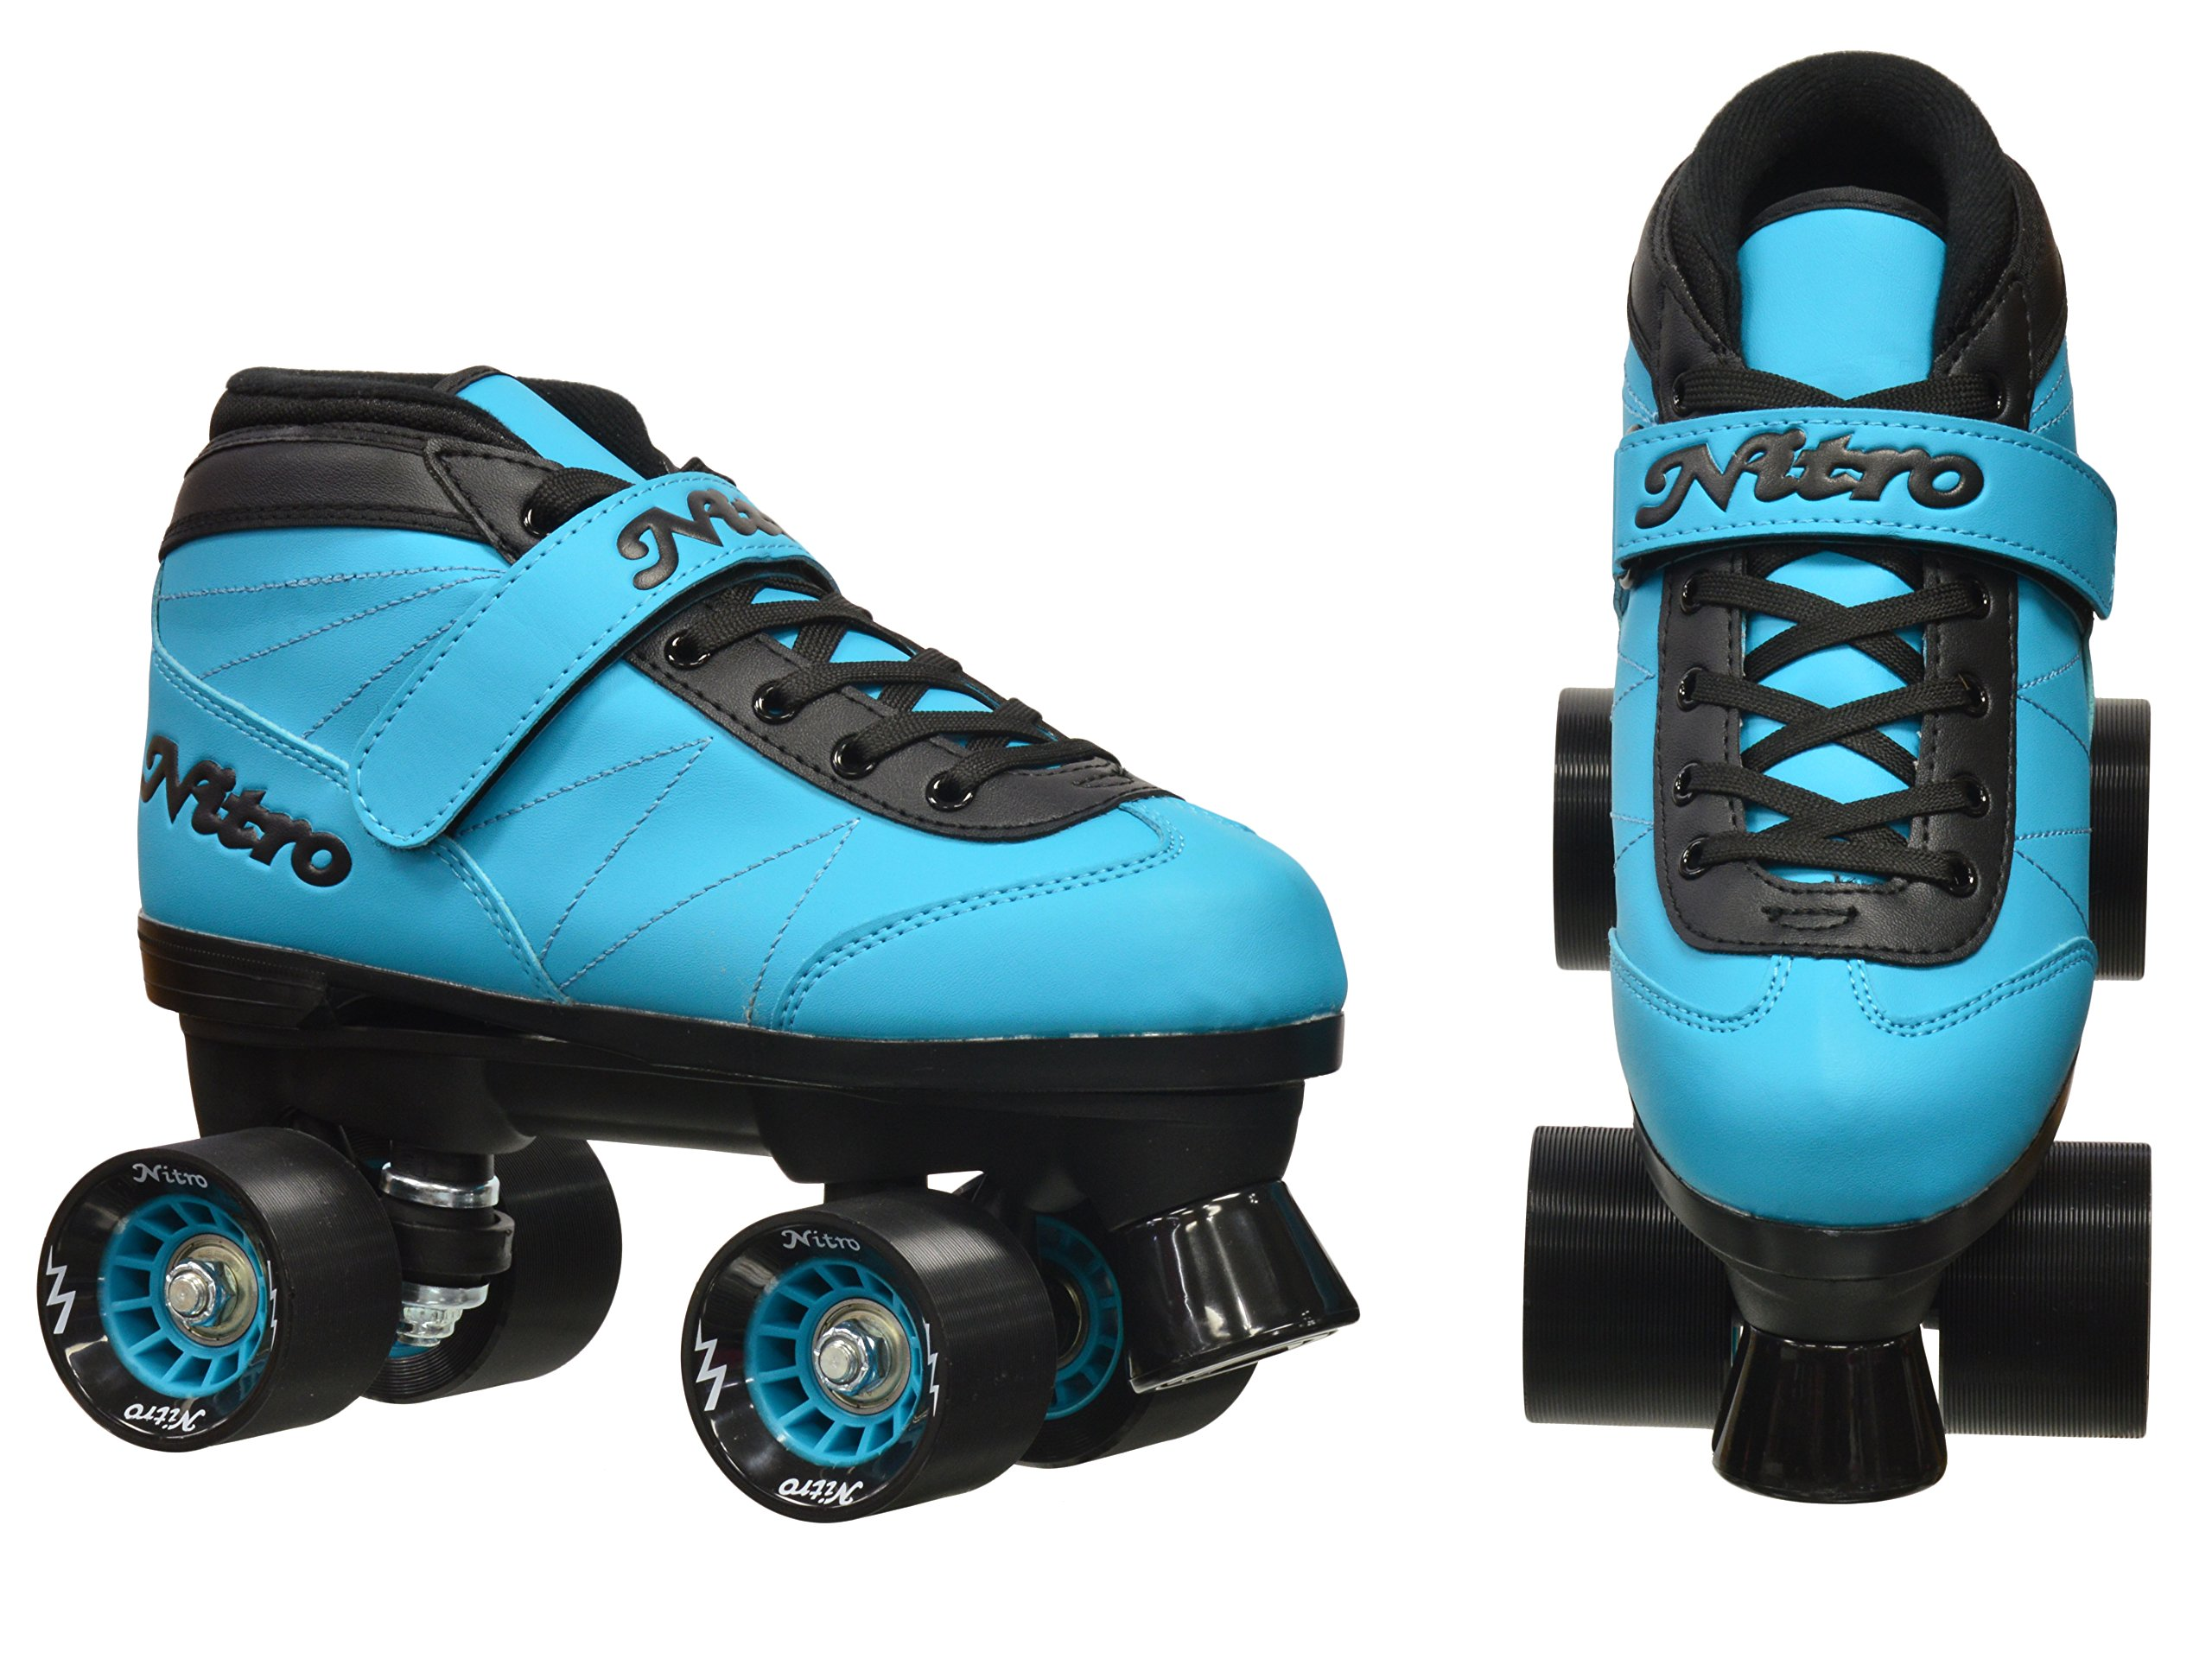 New! Epic Nitro Turbo Blue Indoor / Outdoor Quad Roller Speed Skates w/ 2 Pair of Laces (Blue & Black) (Mens 9) by Epic Skates (Image #3)